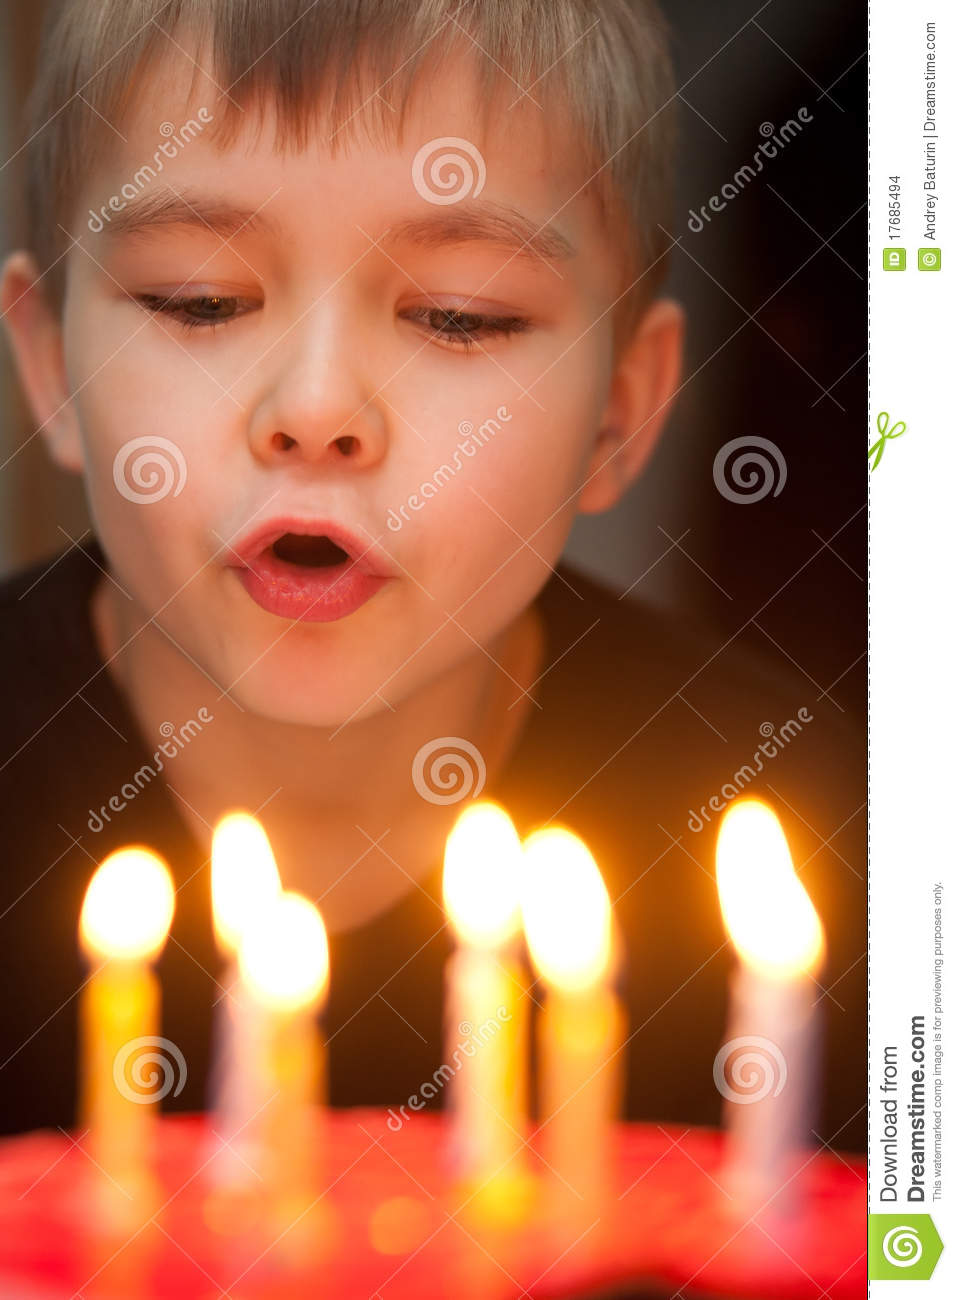 Boy Blowing Out Candles On Birthday Cake Stock Photo